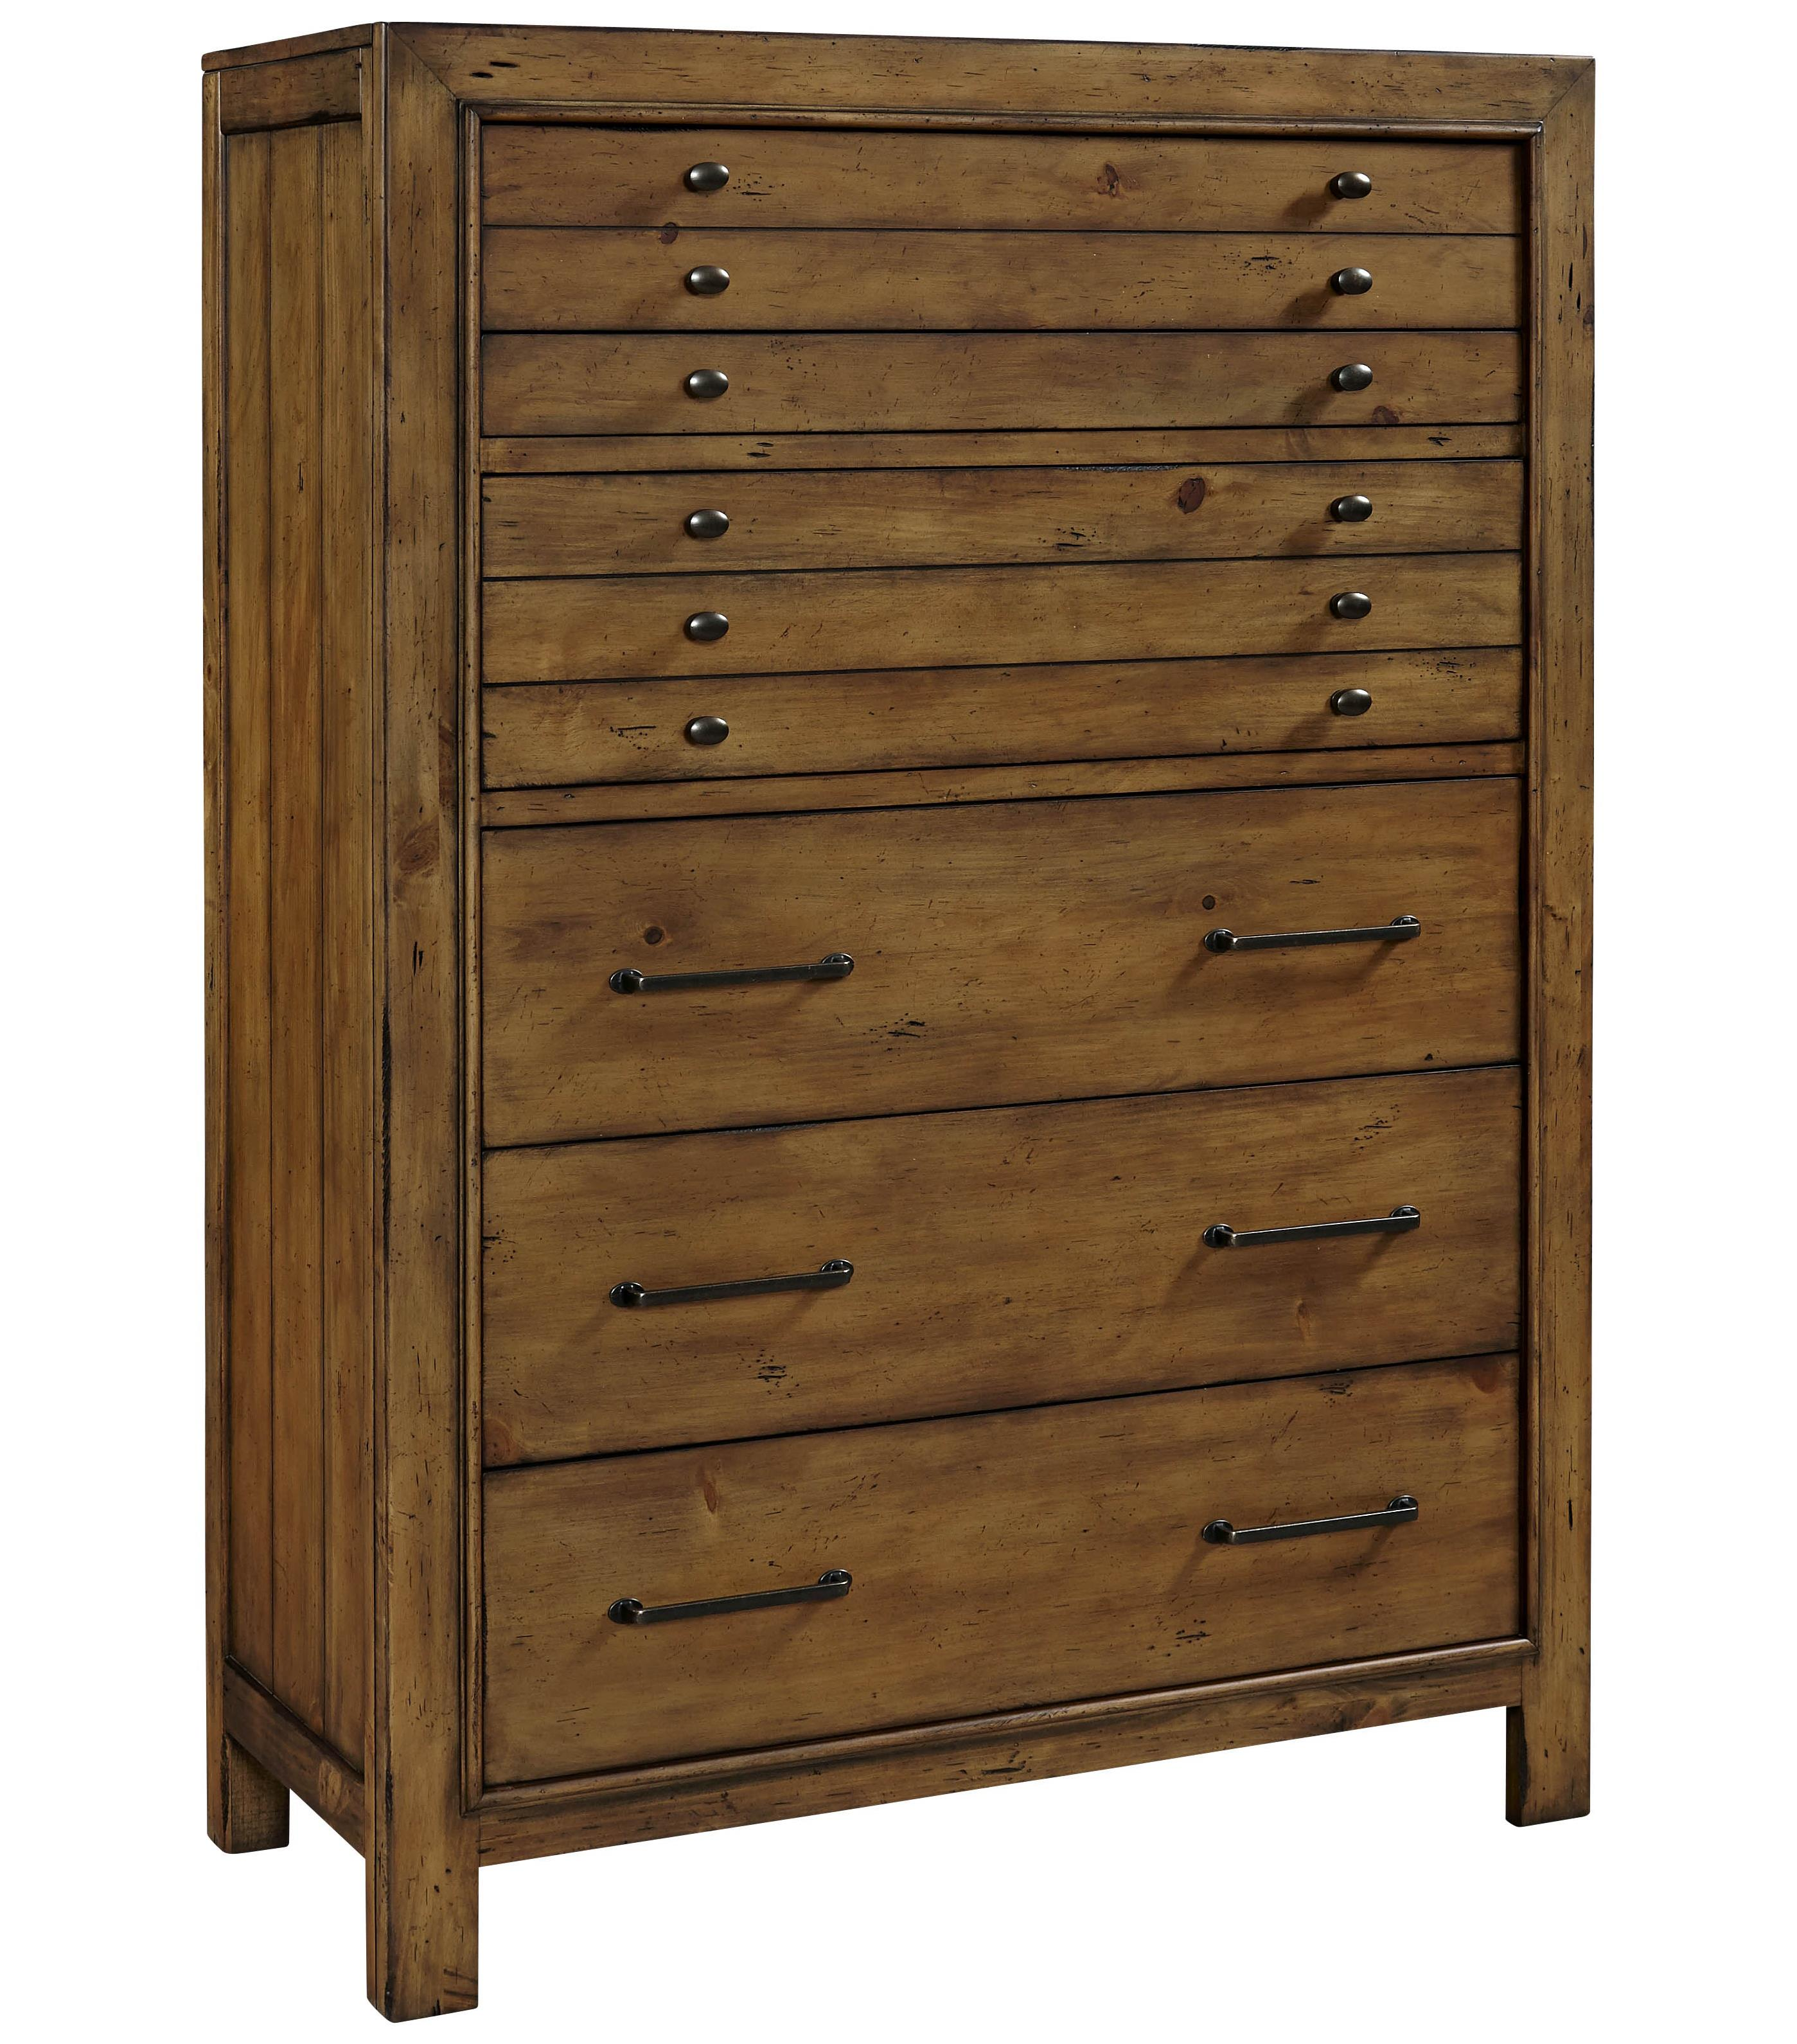 Broyhill Furniture Bethany Square 6 Drawer Chest - Item Number: 4930-240